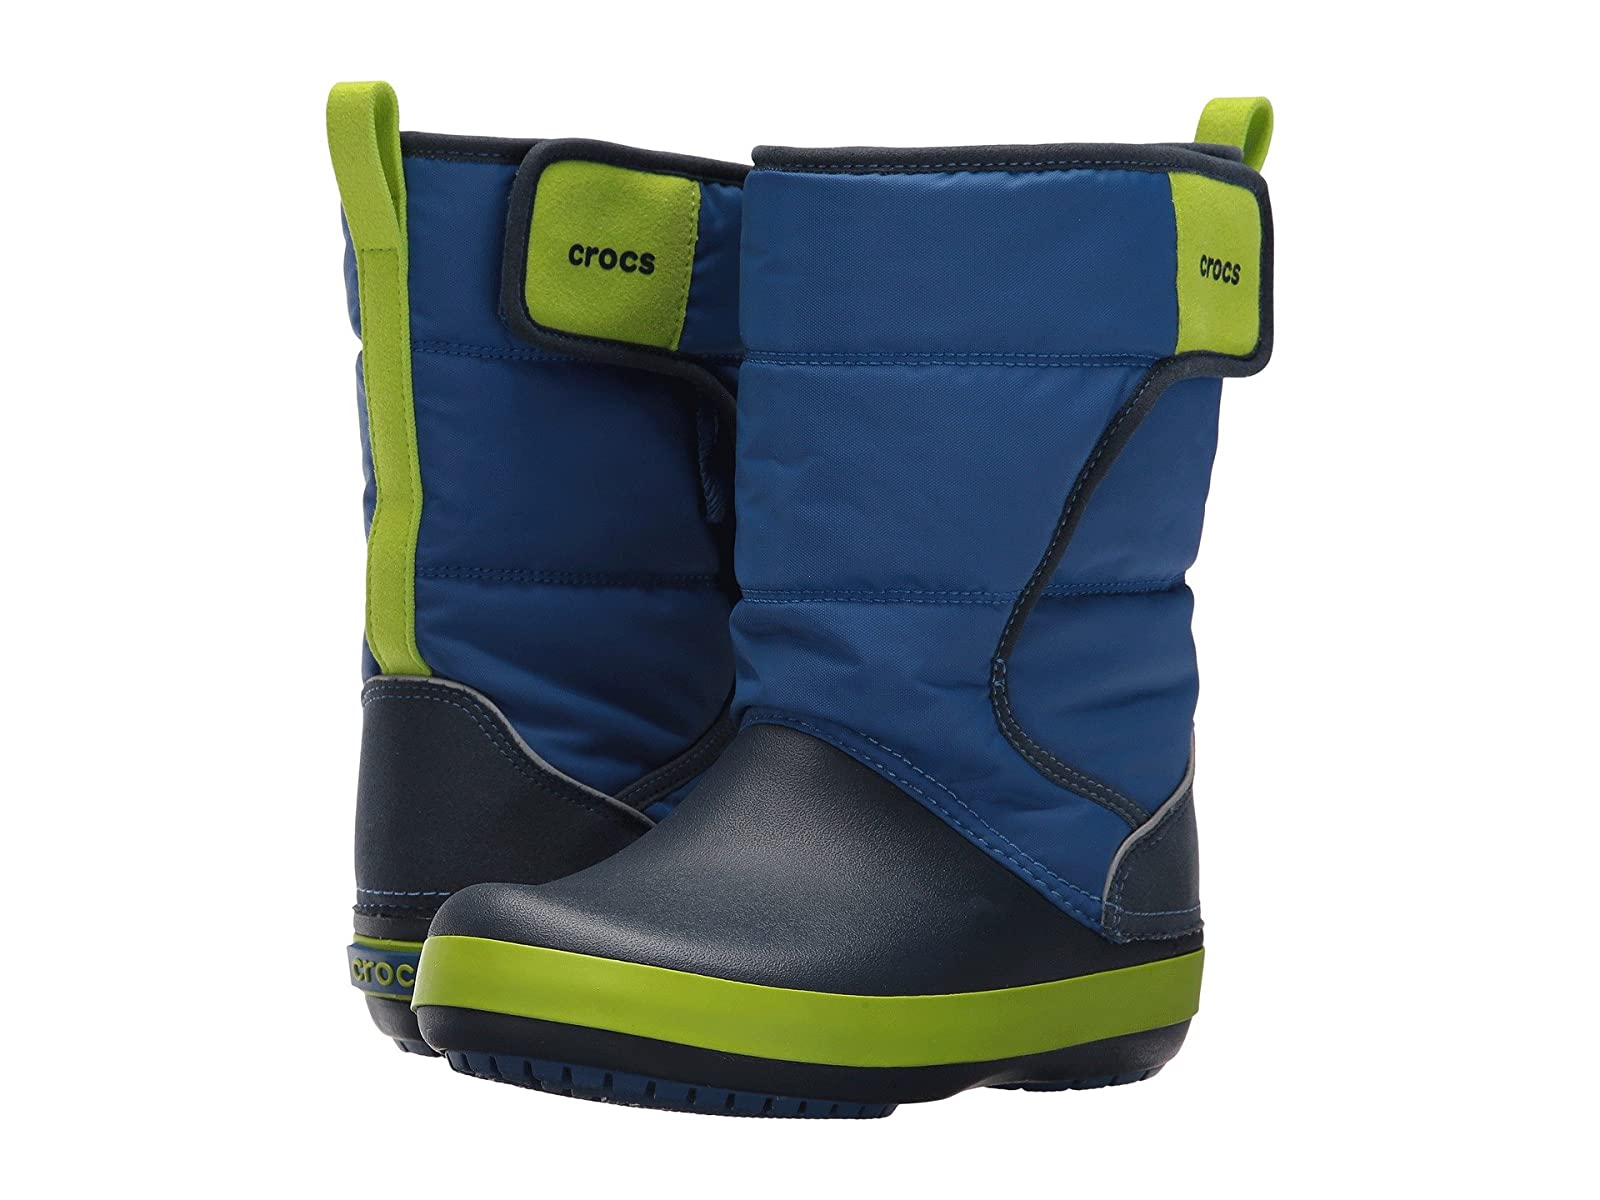 Crocs Kids LodgePoint Snow Boot (Toddler/Little Kid)Affordable and distinctive shoes